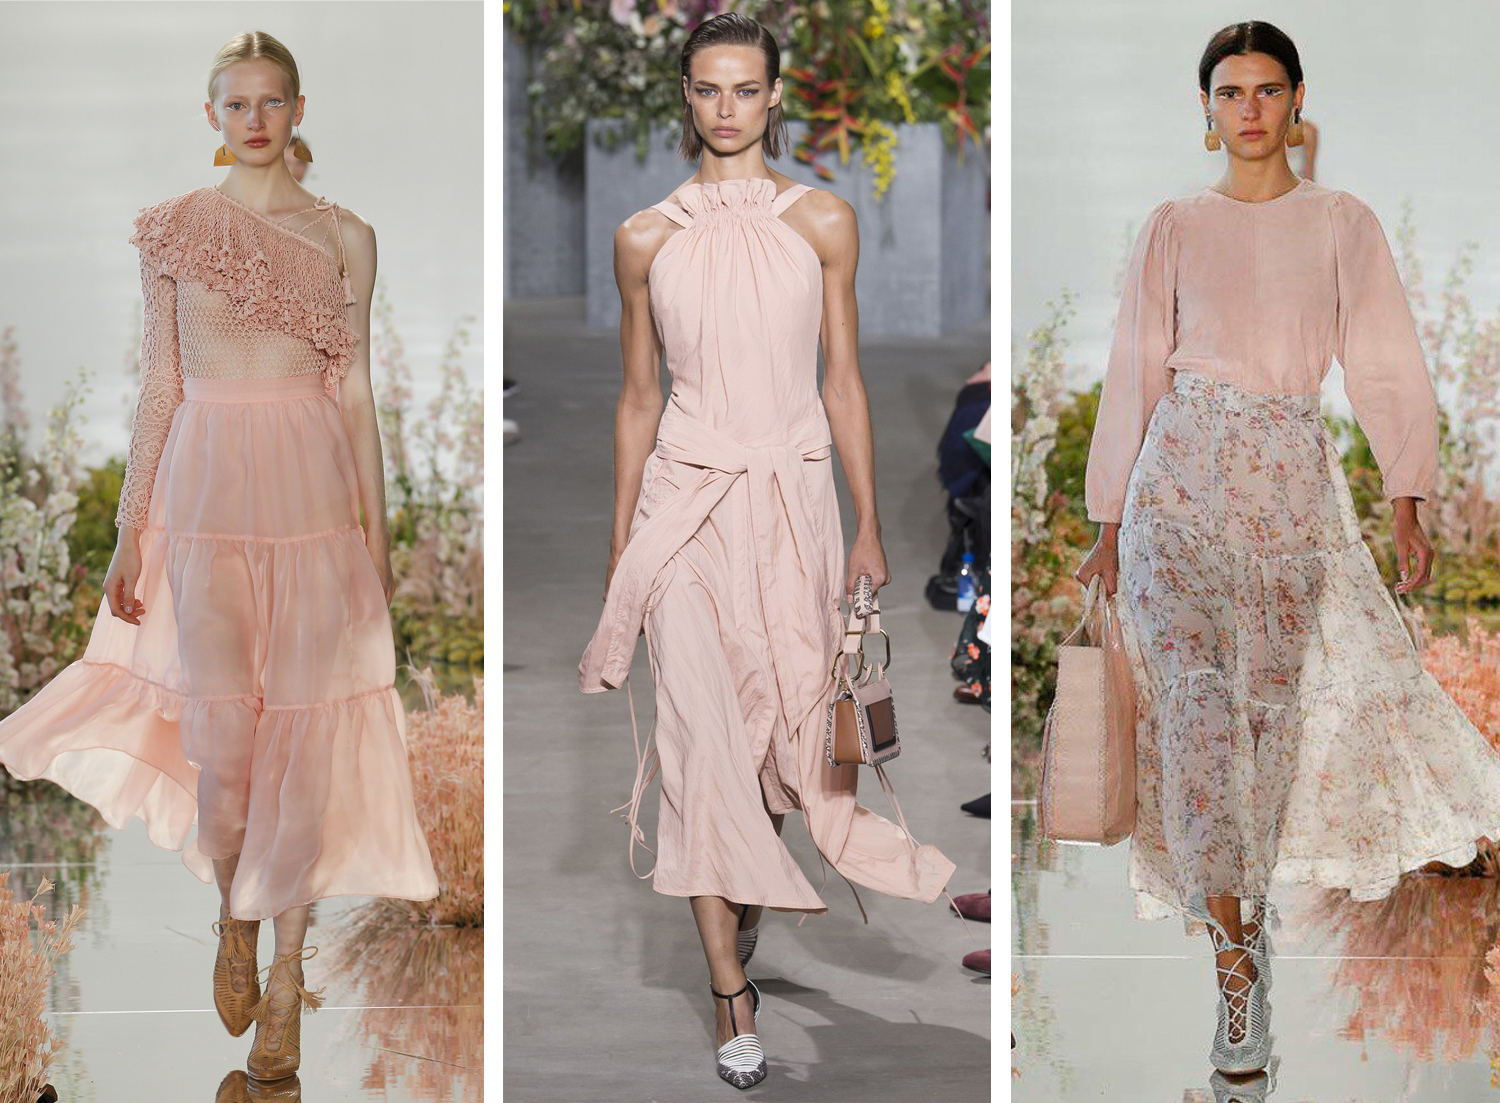 rose-quartz-pink-color-trends-spring-2018-fashion